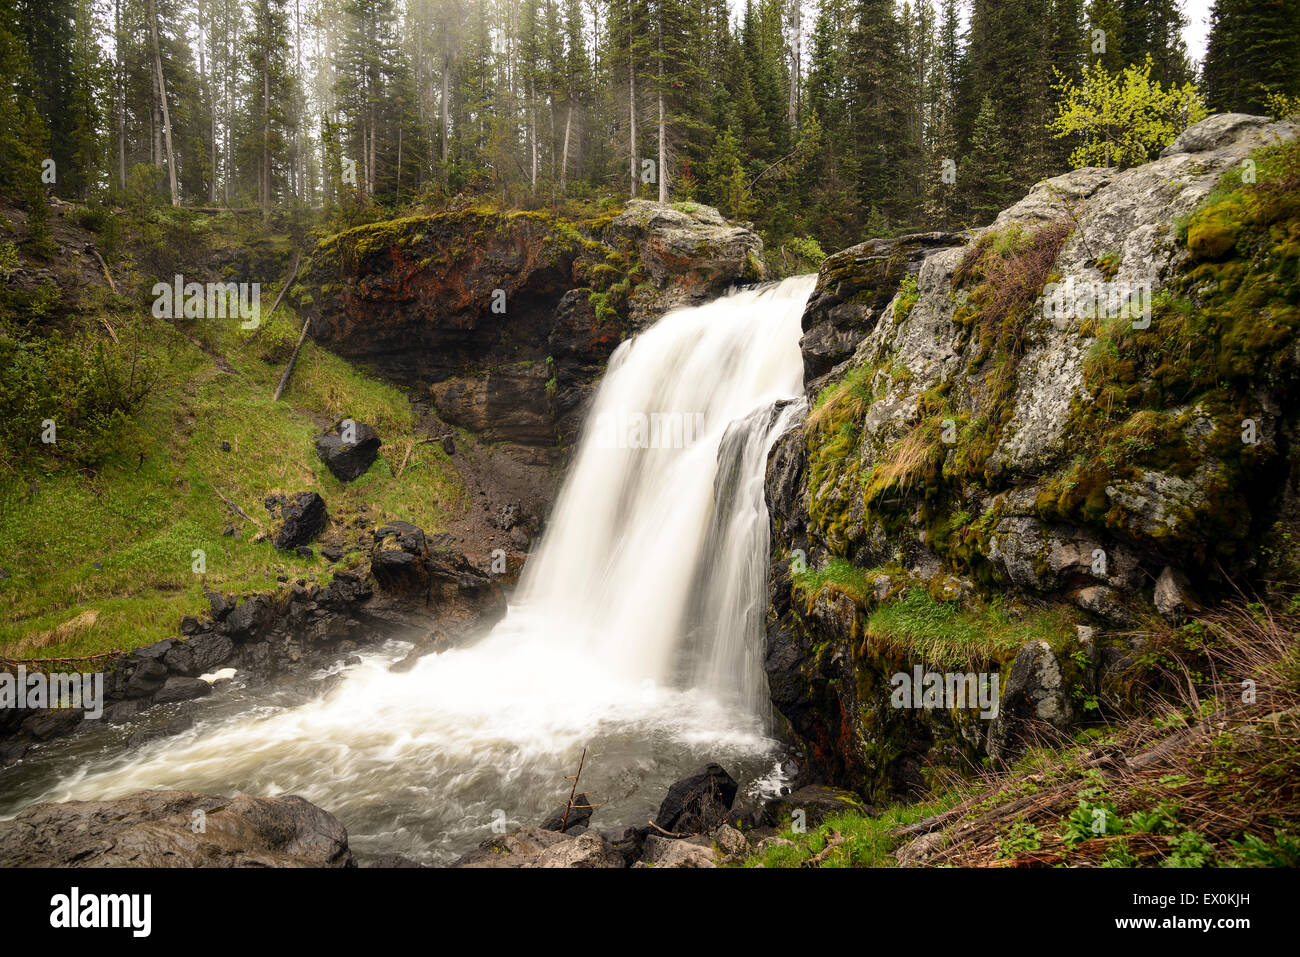 Beautiful Moose Falls in evening light at Yellowstone National Park - Wyoming. - Stock Image